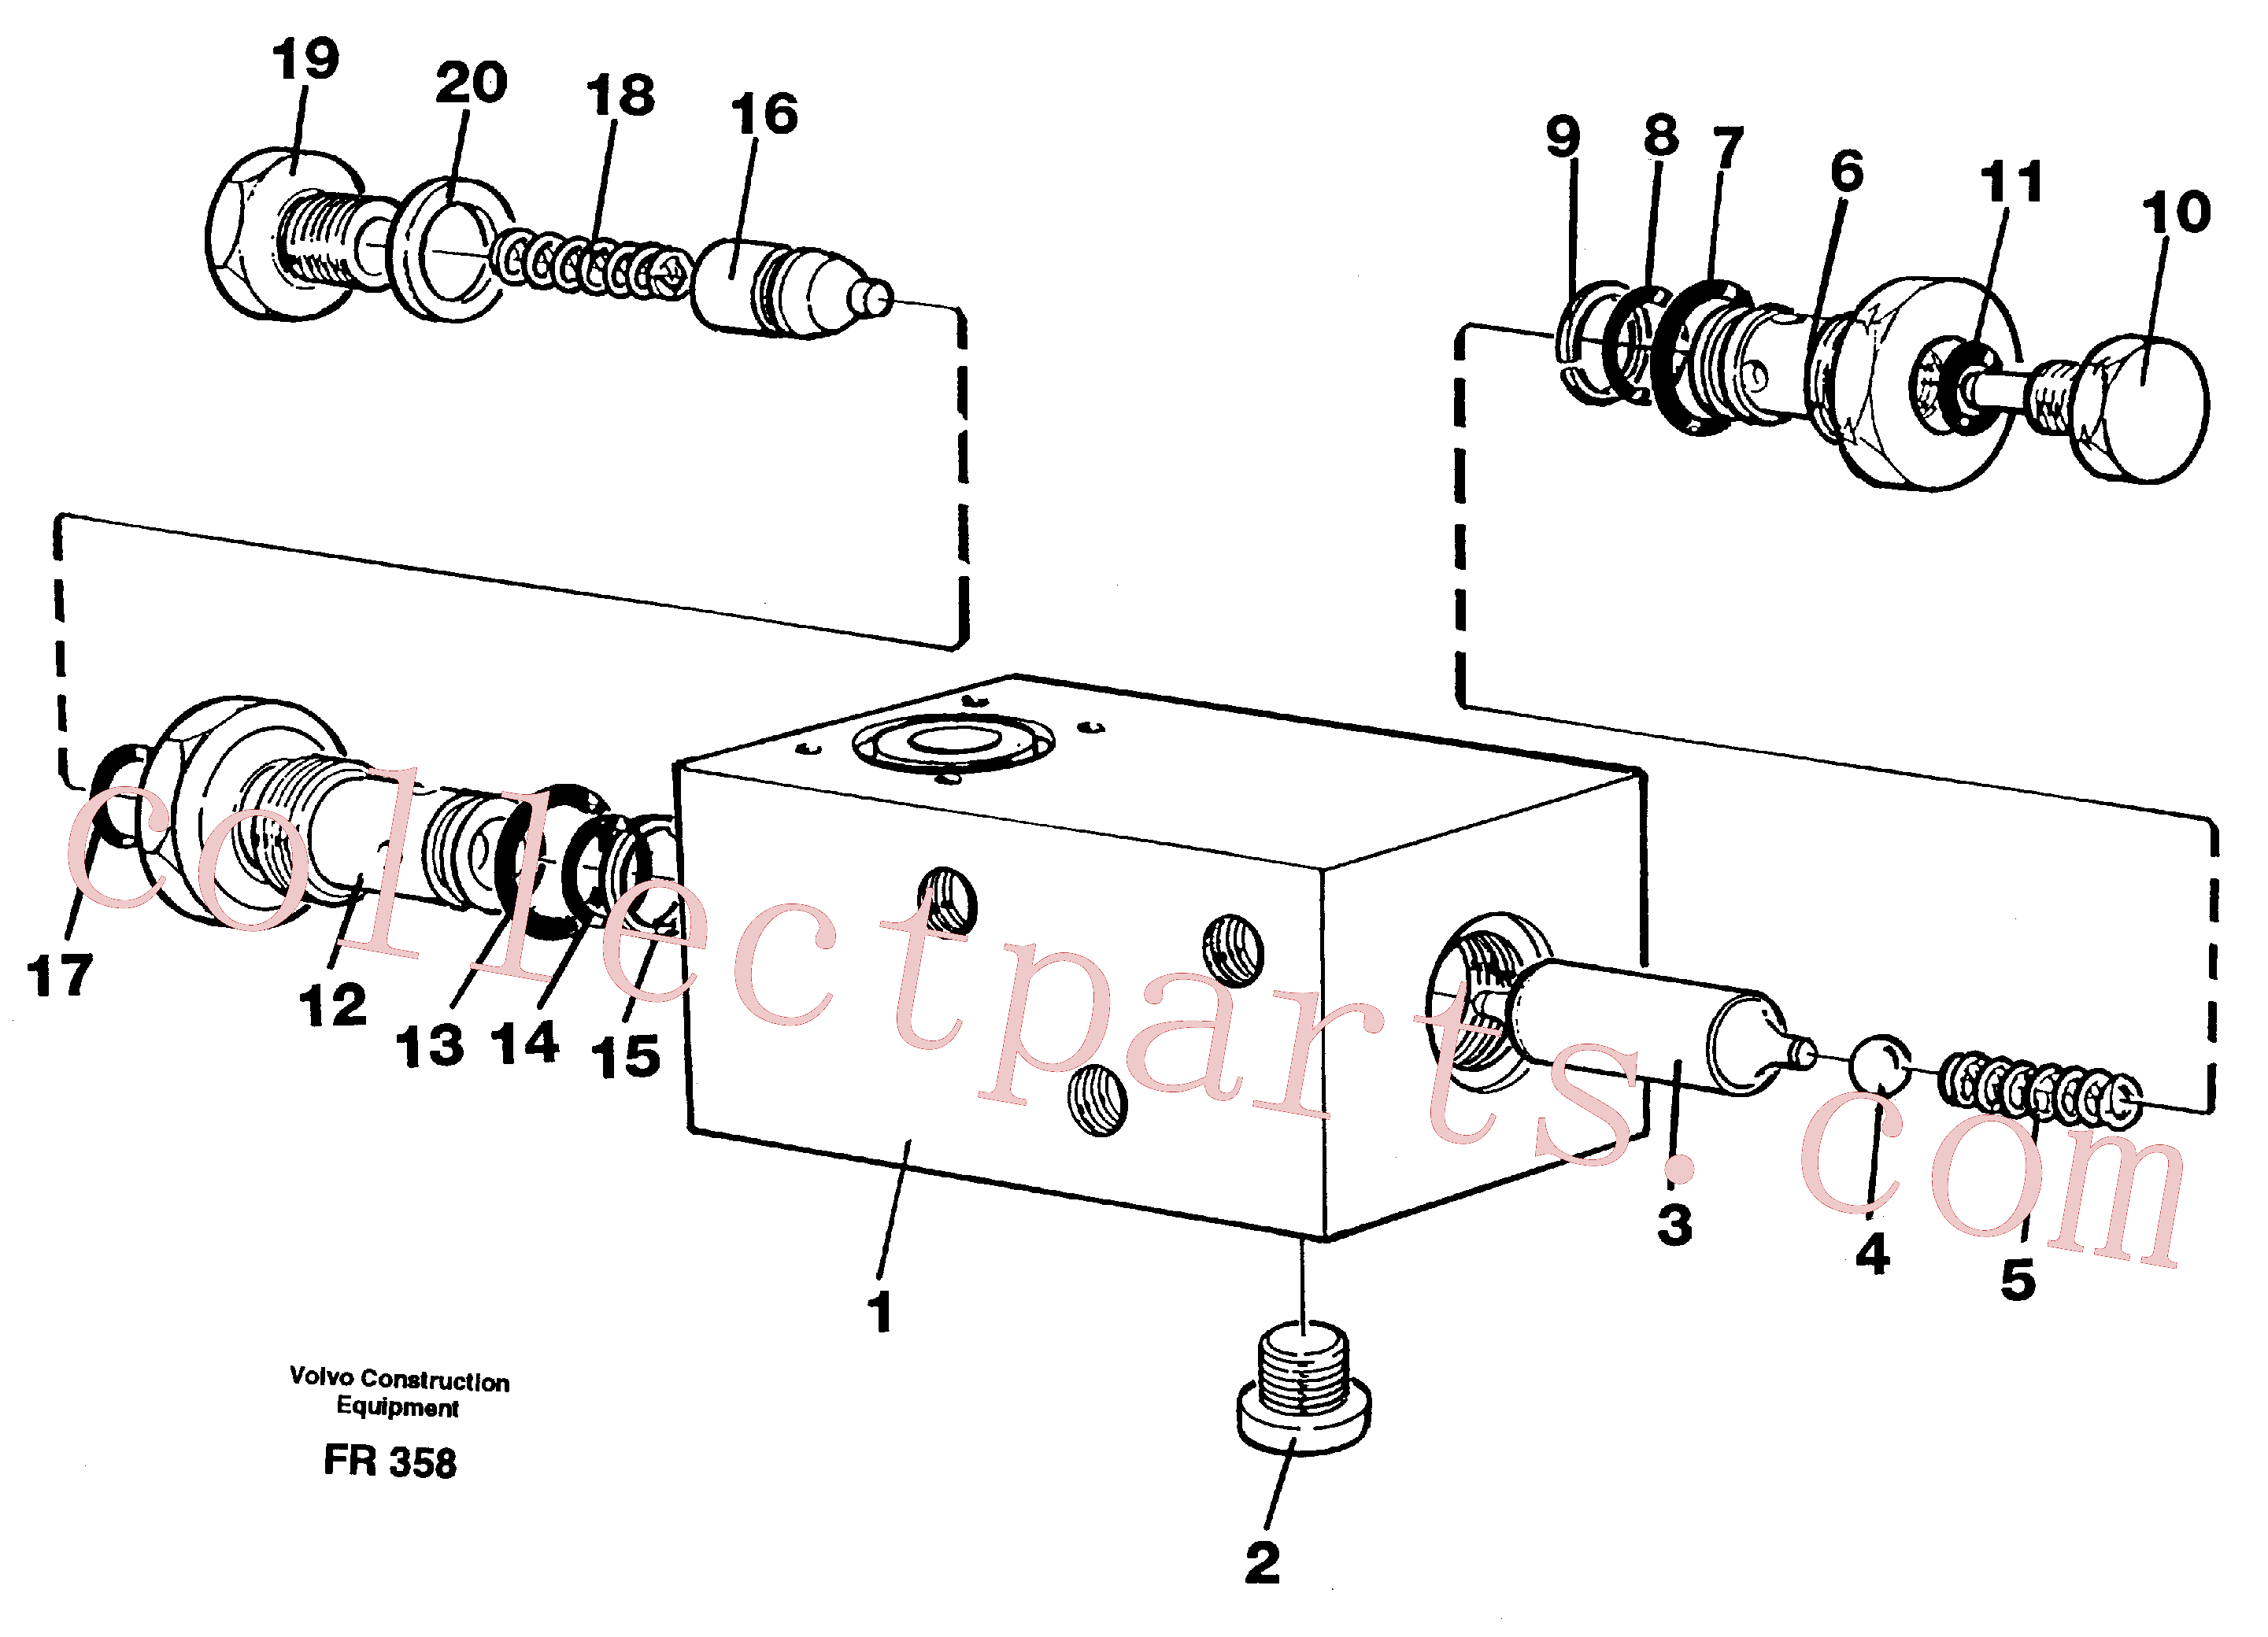 VOE960168 for Volvo Hydraulic lock(FR358 assembly)